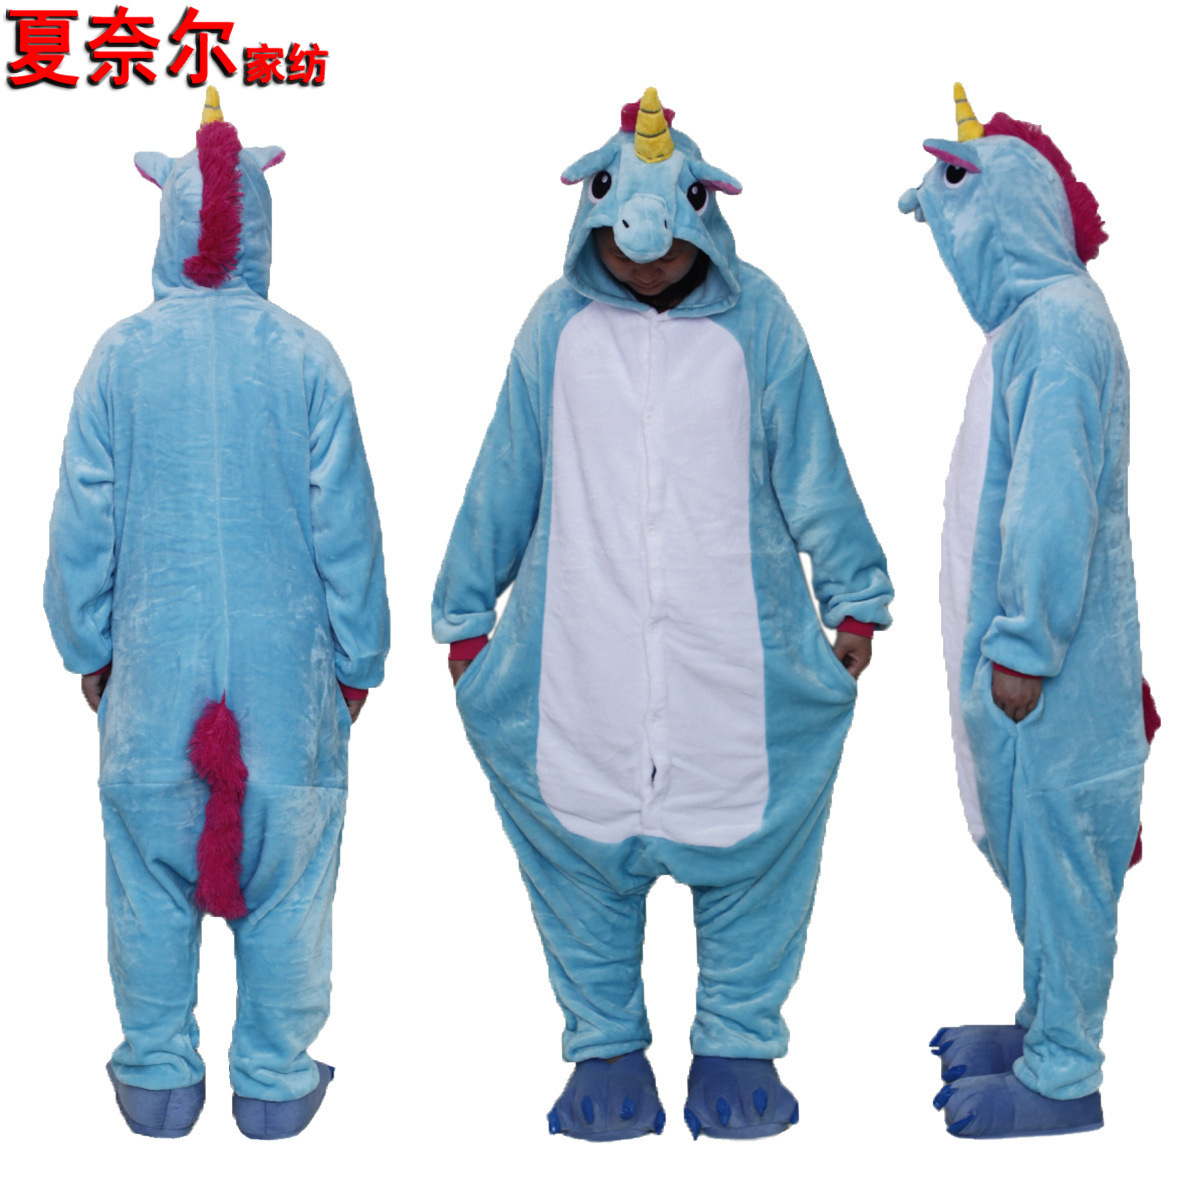 Unicorn beast Tianma cartoon animal one-piece pajamas men and women long-sleeved flannel pajamas